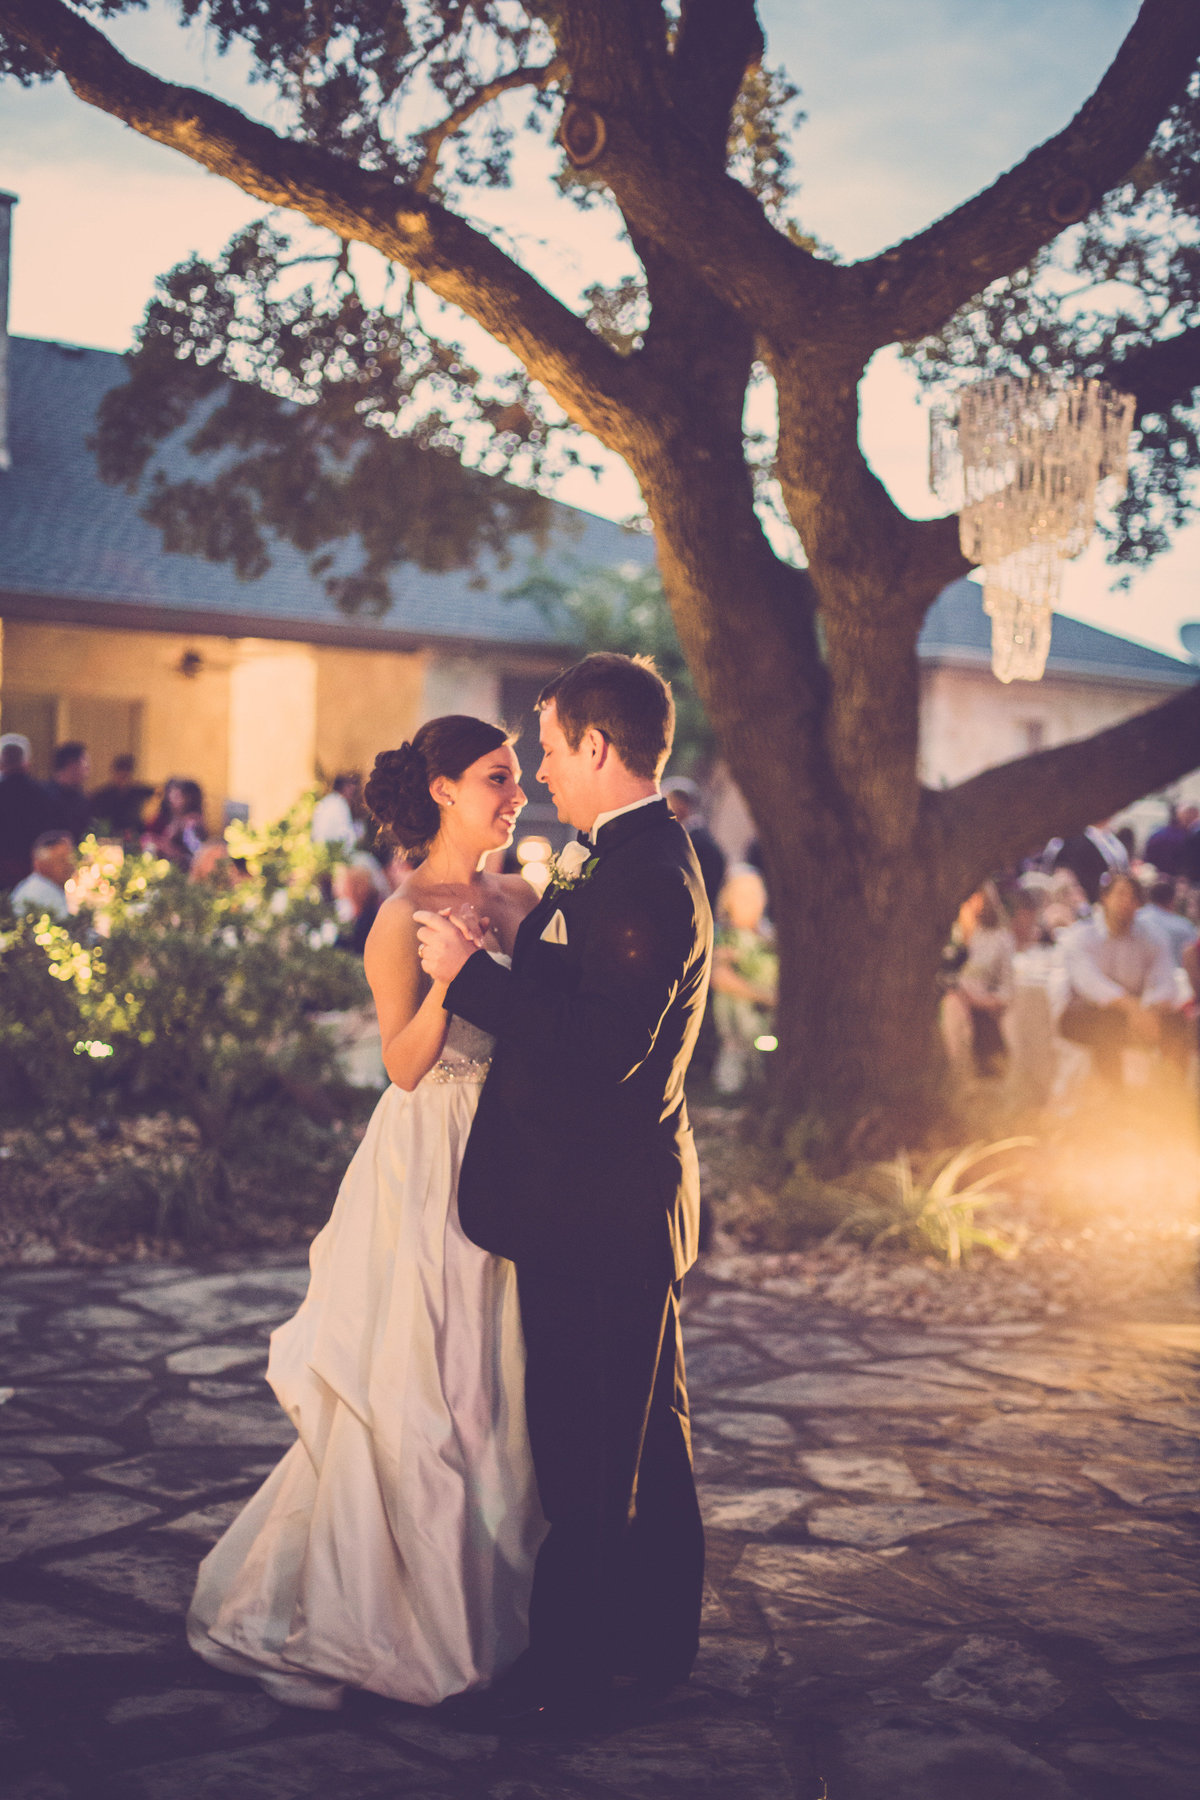 bride and groom wedding first dance outdoors in helotes texas hill country wedding